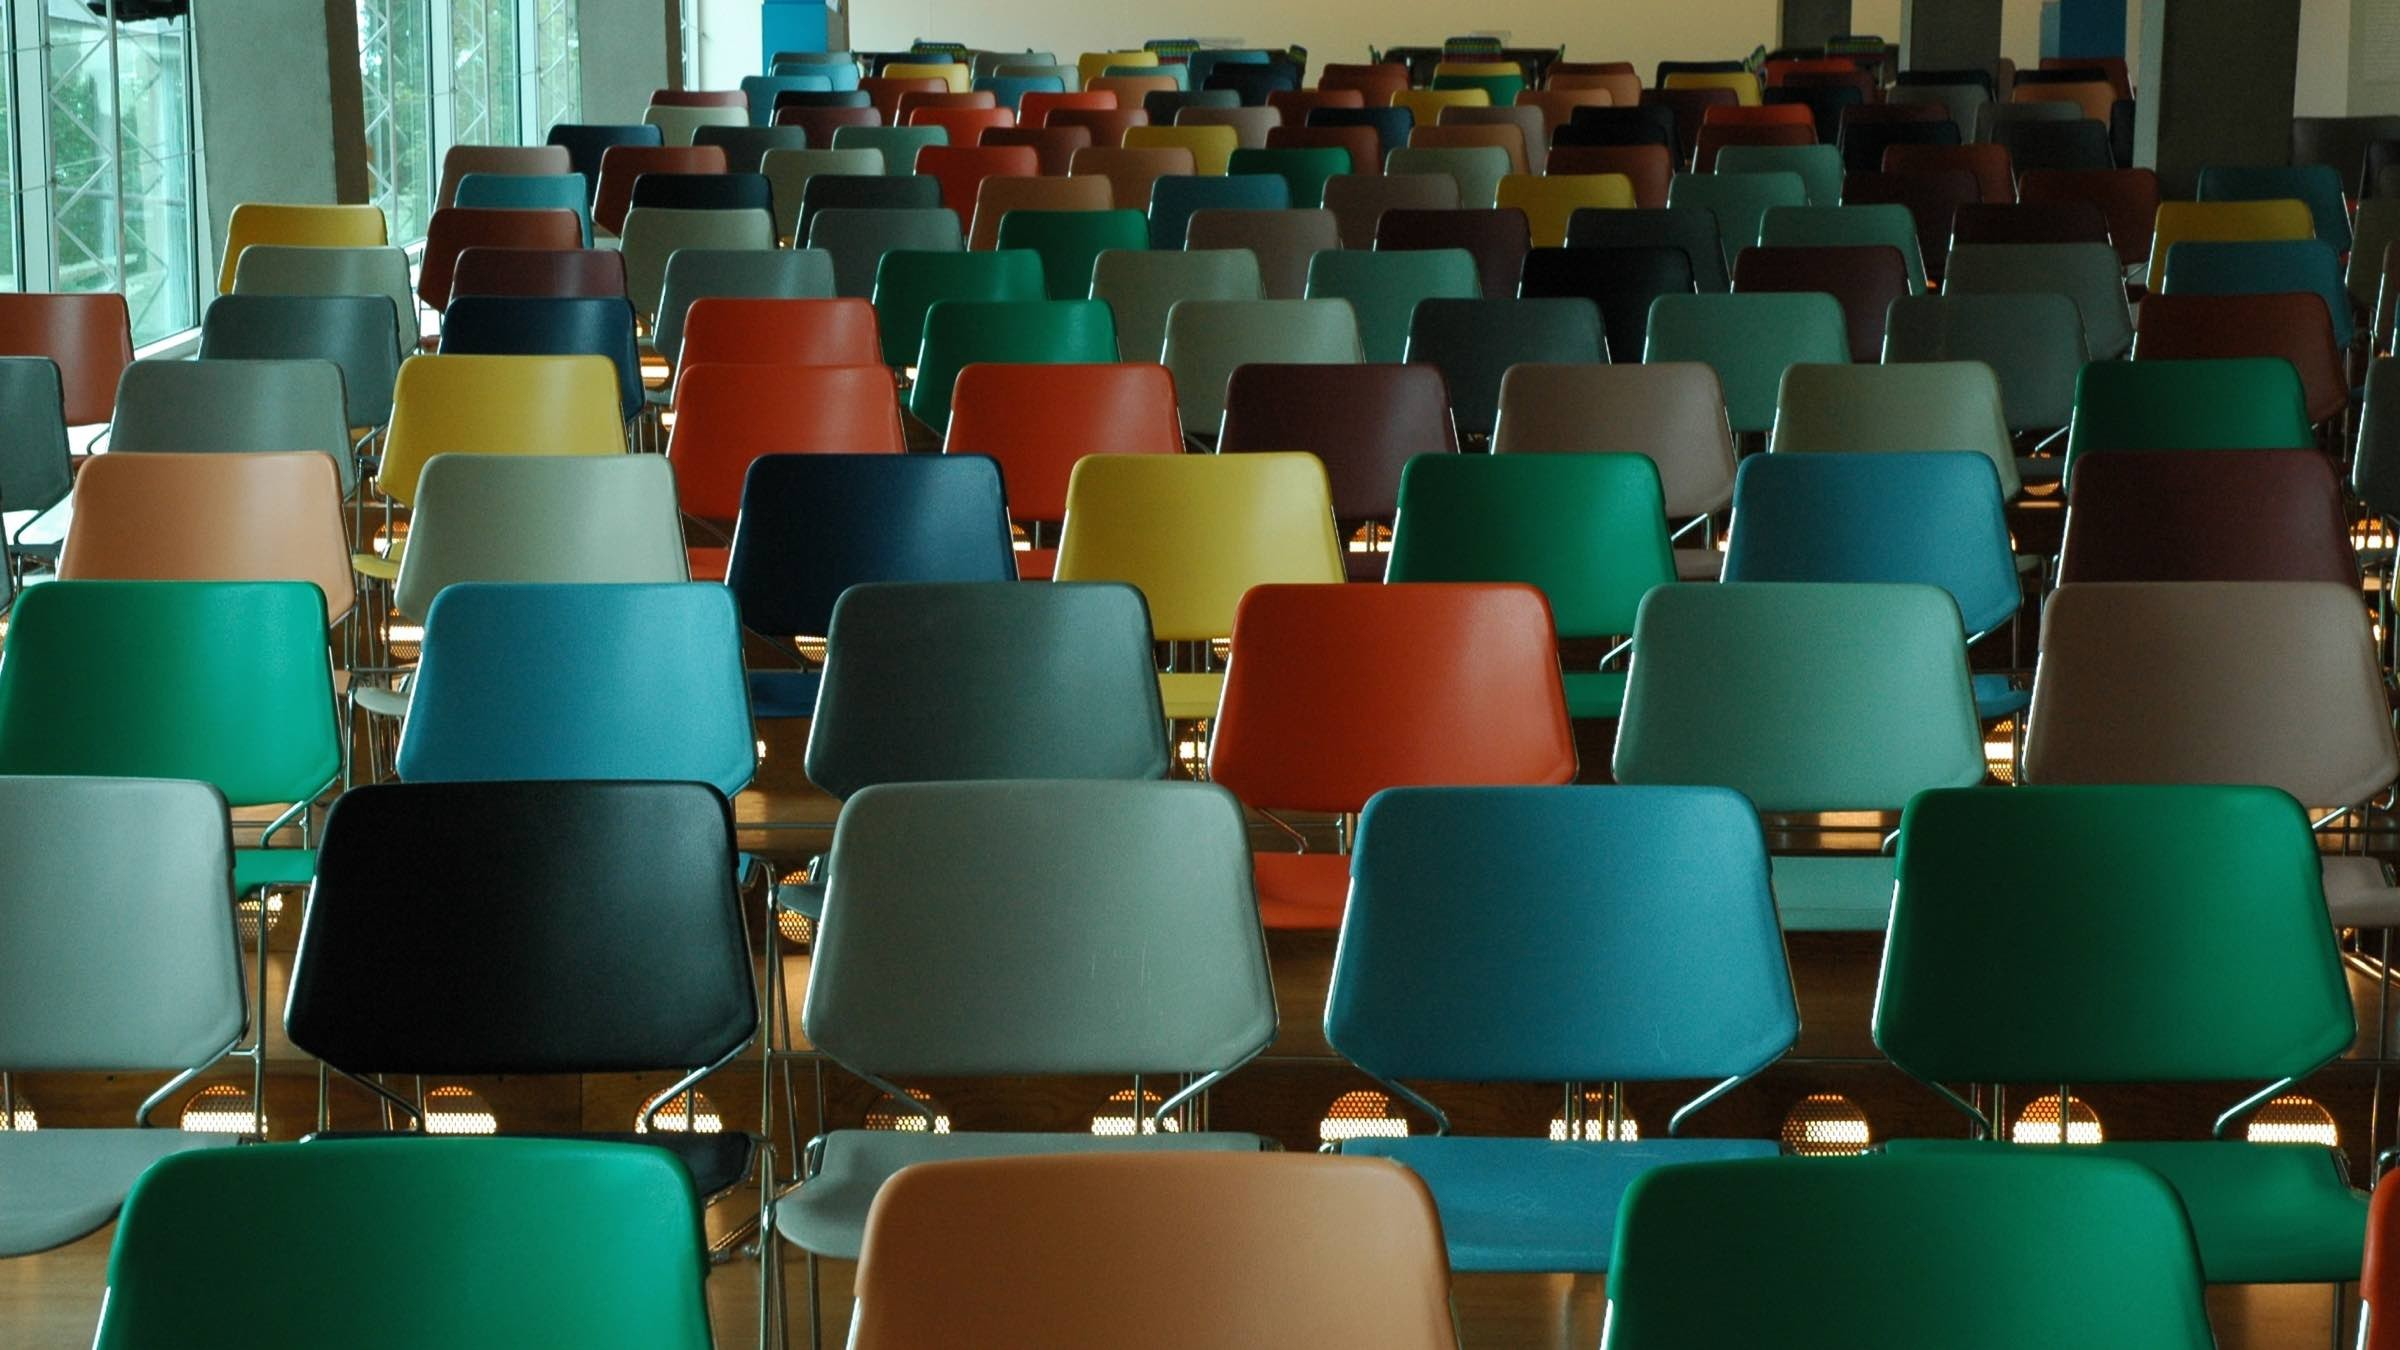 The High Price of Self-Induced Self-Importance (Student Talks)